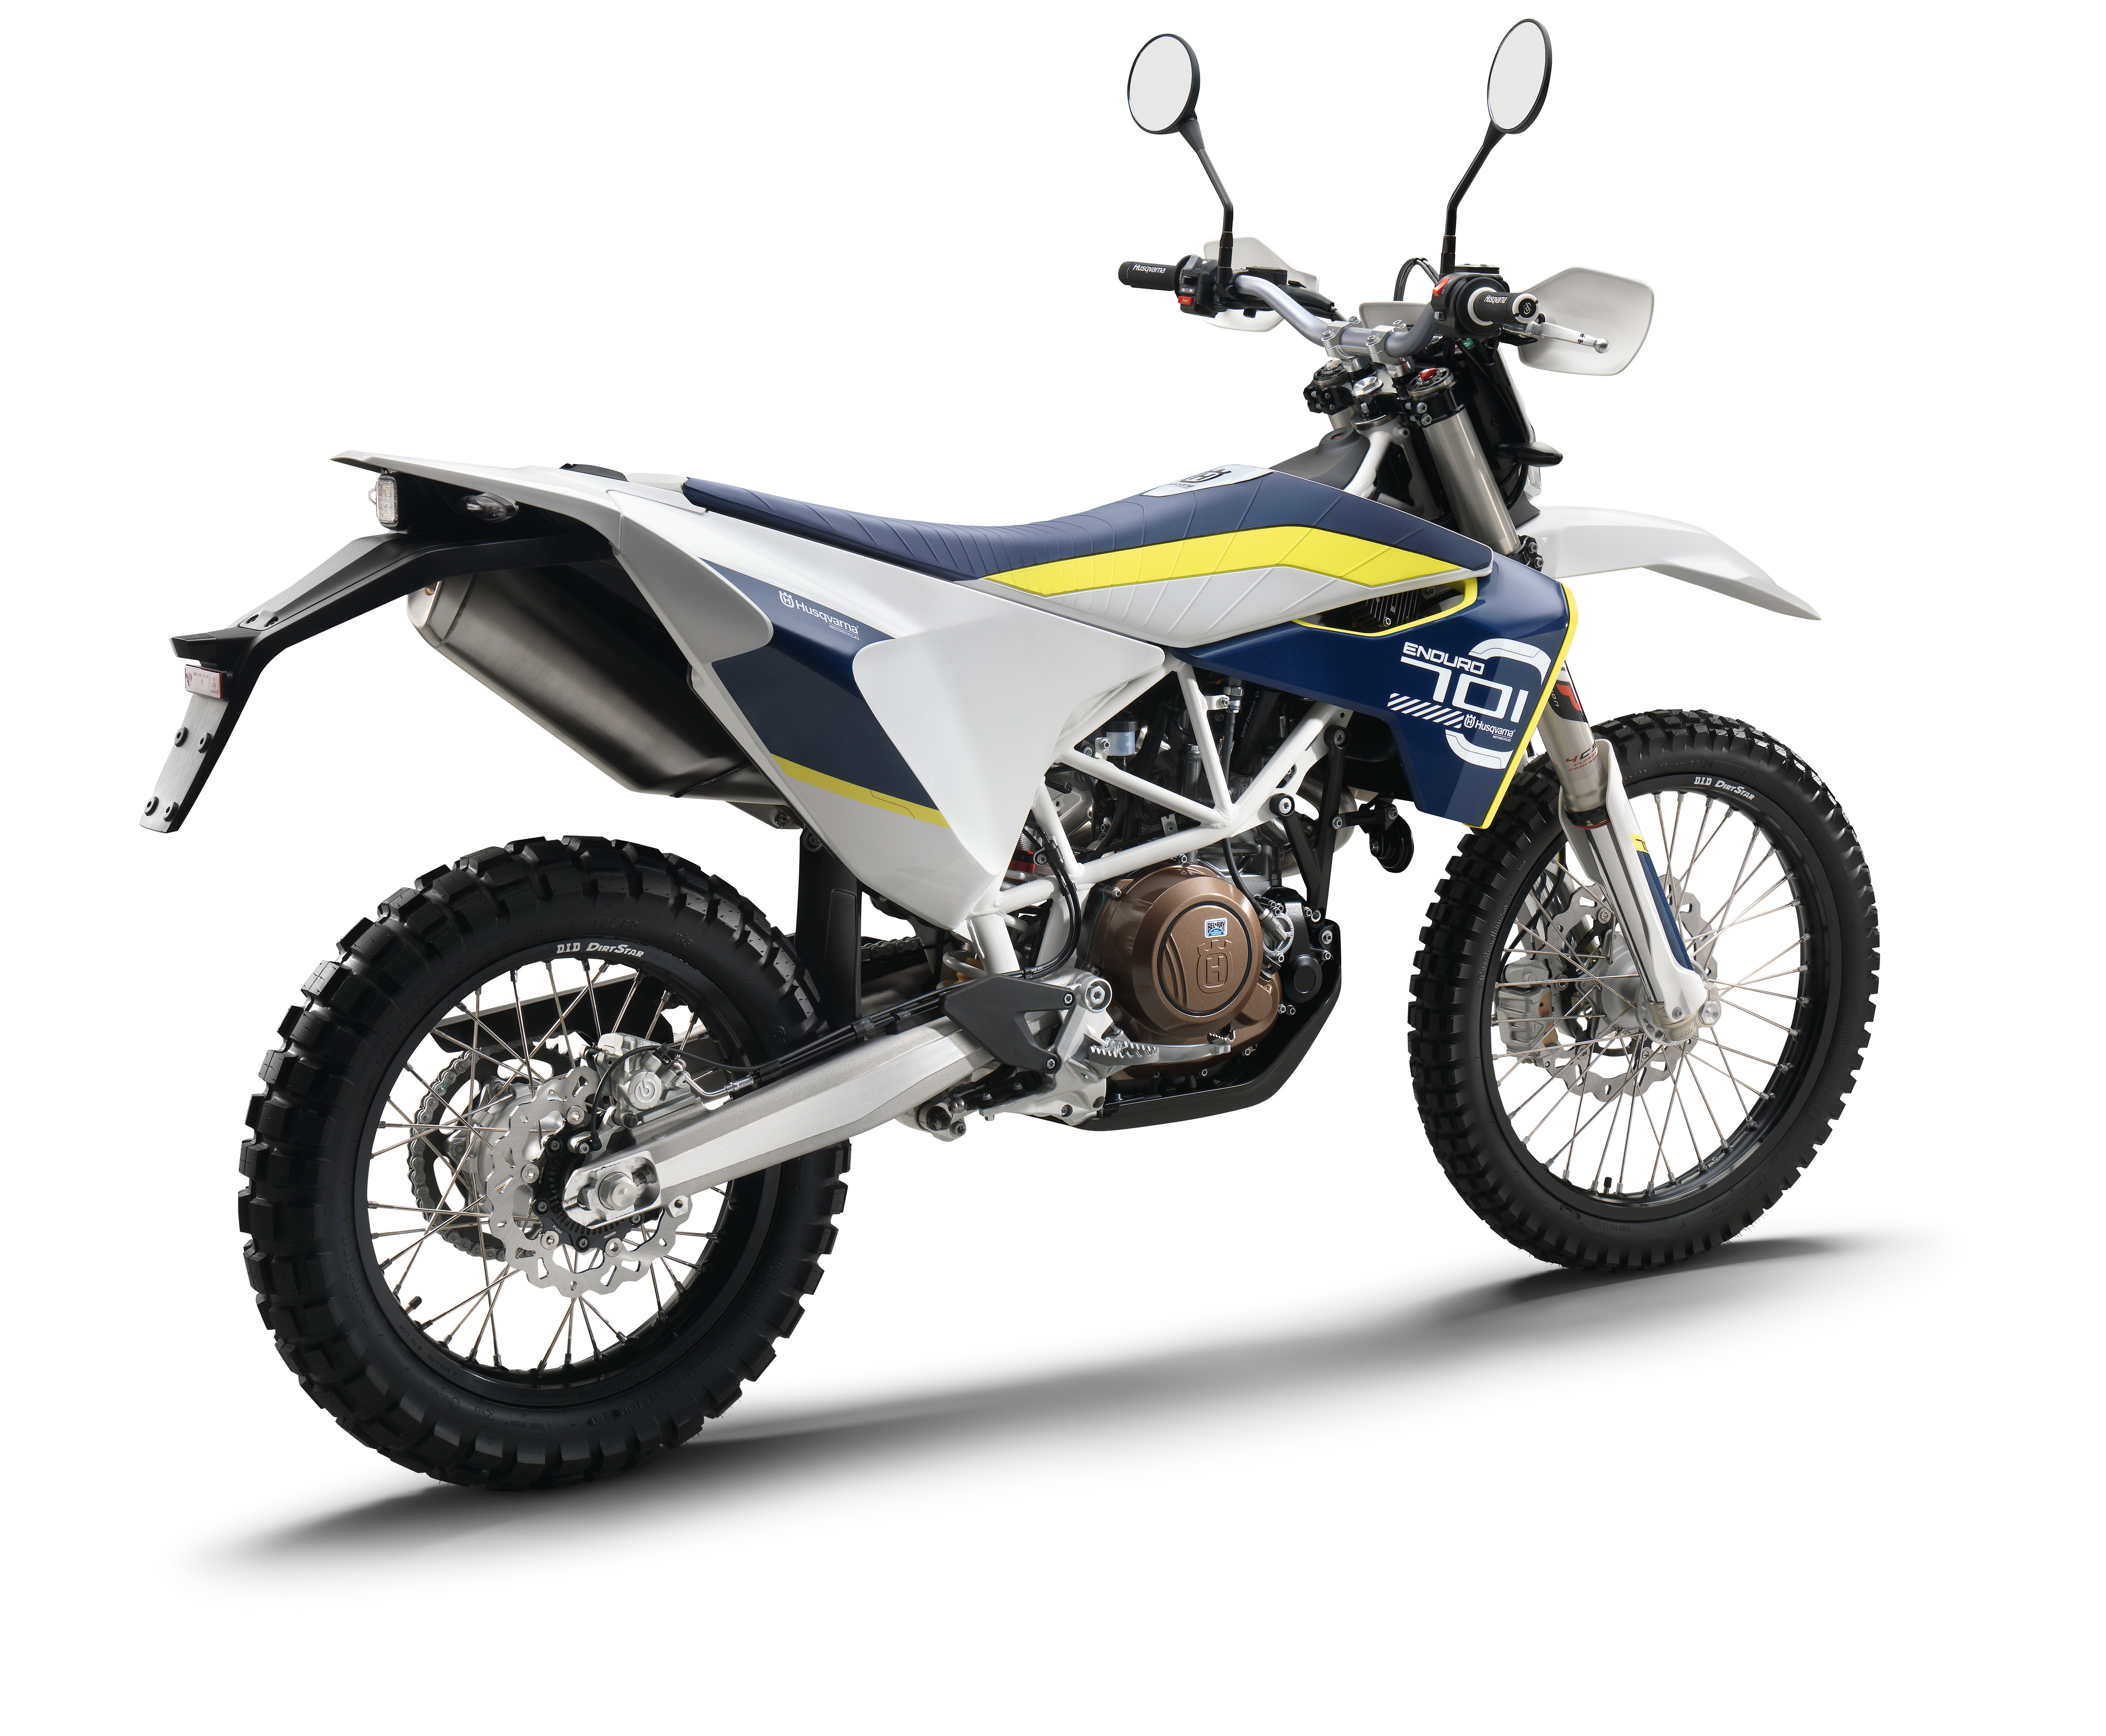 Used Ktm Enduro Motorcycles For Sale